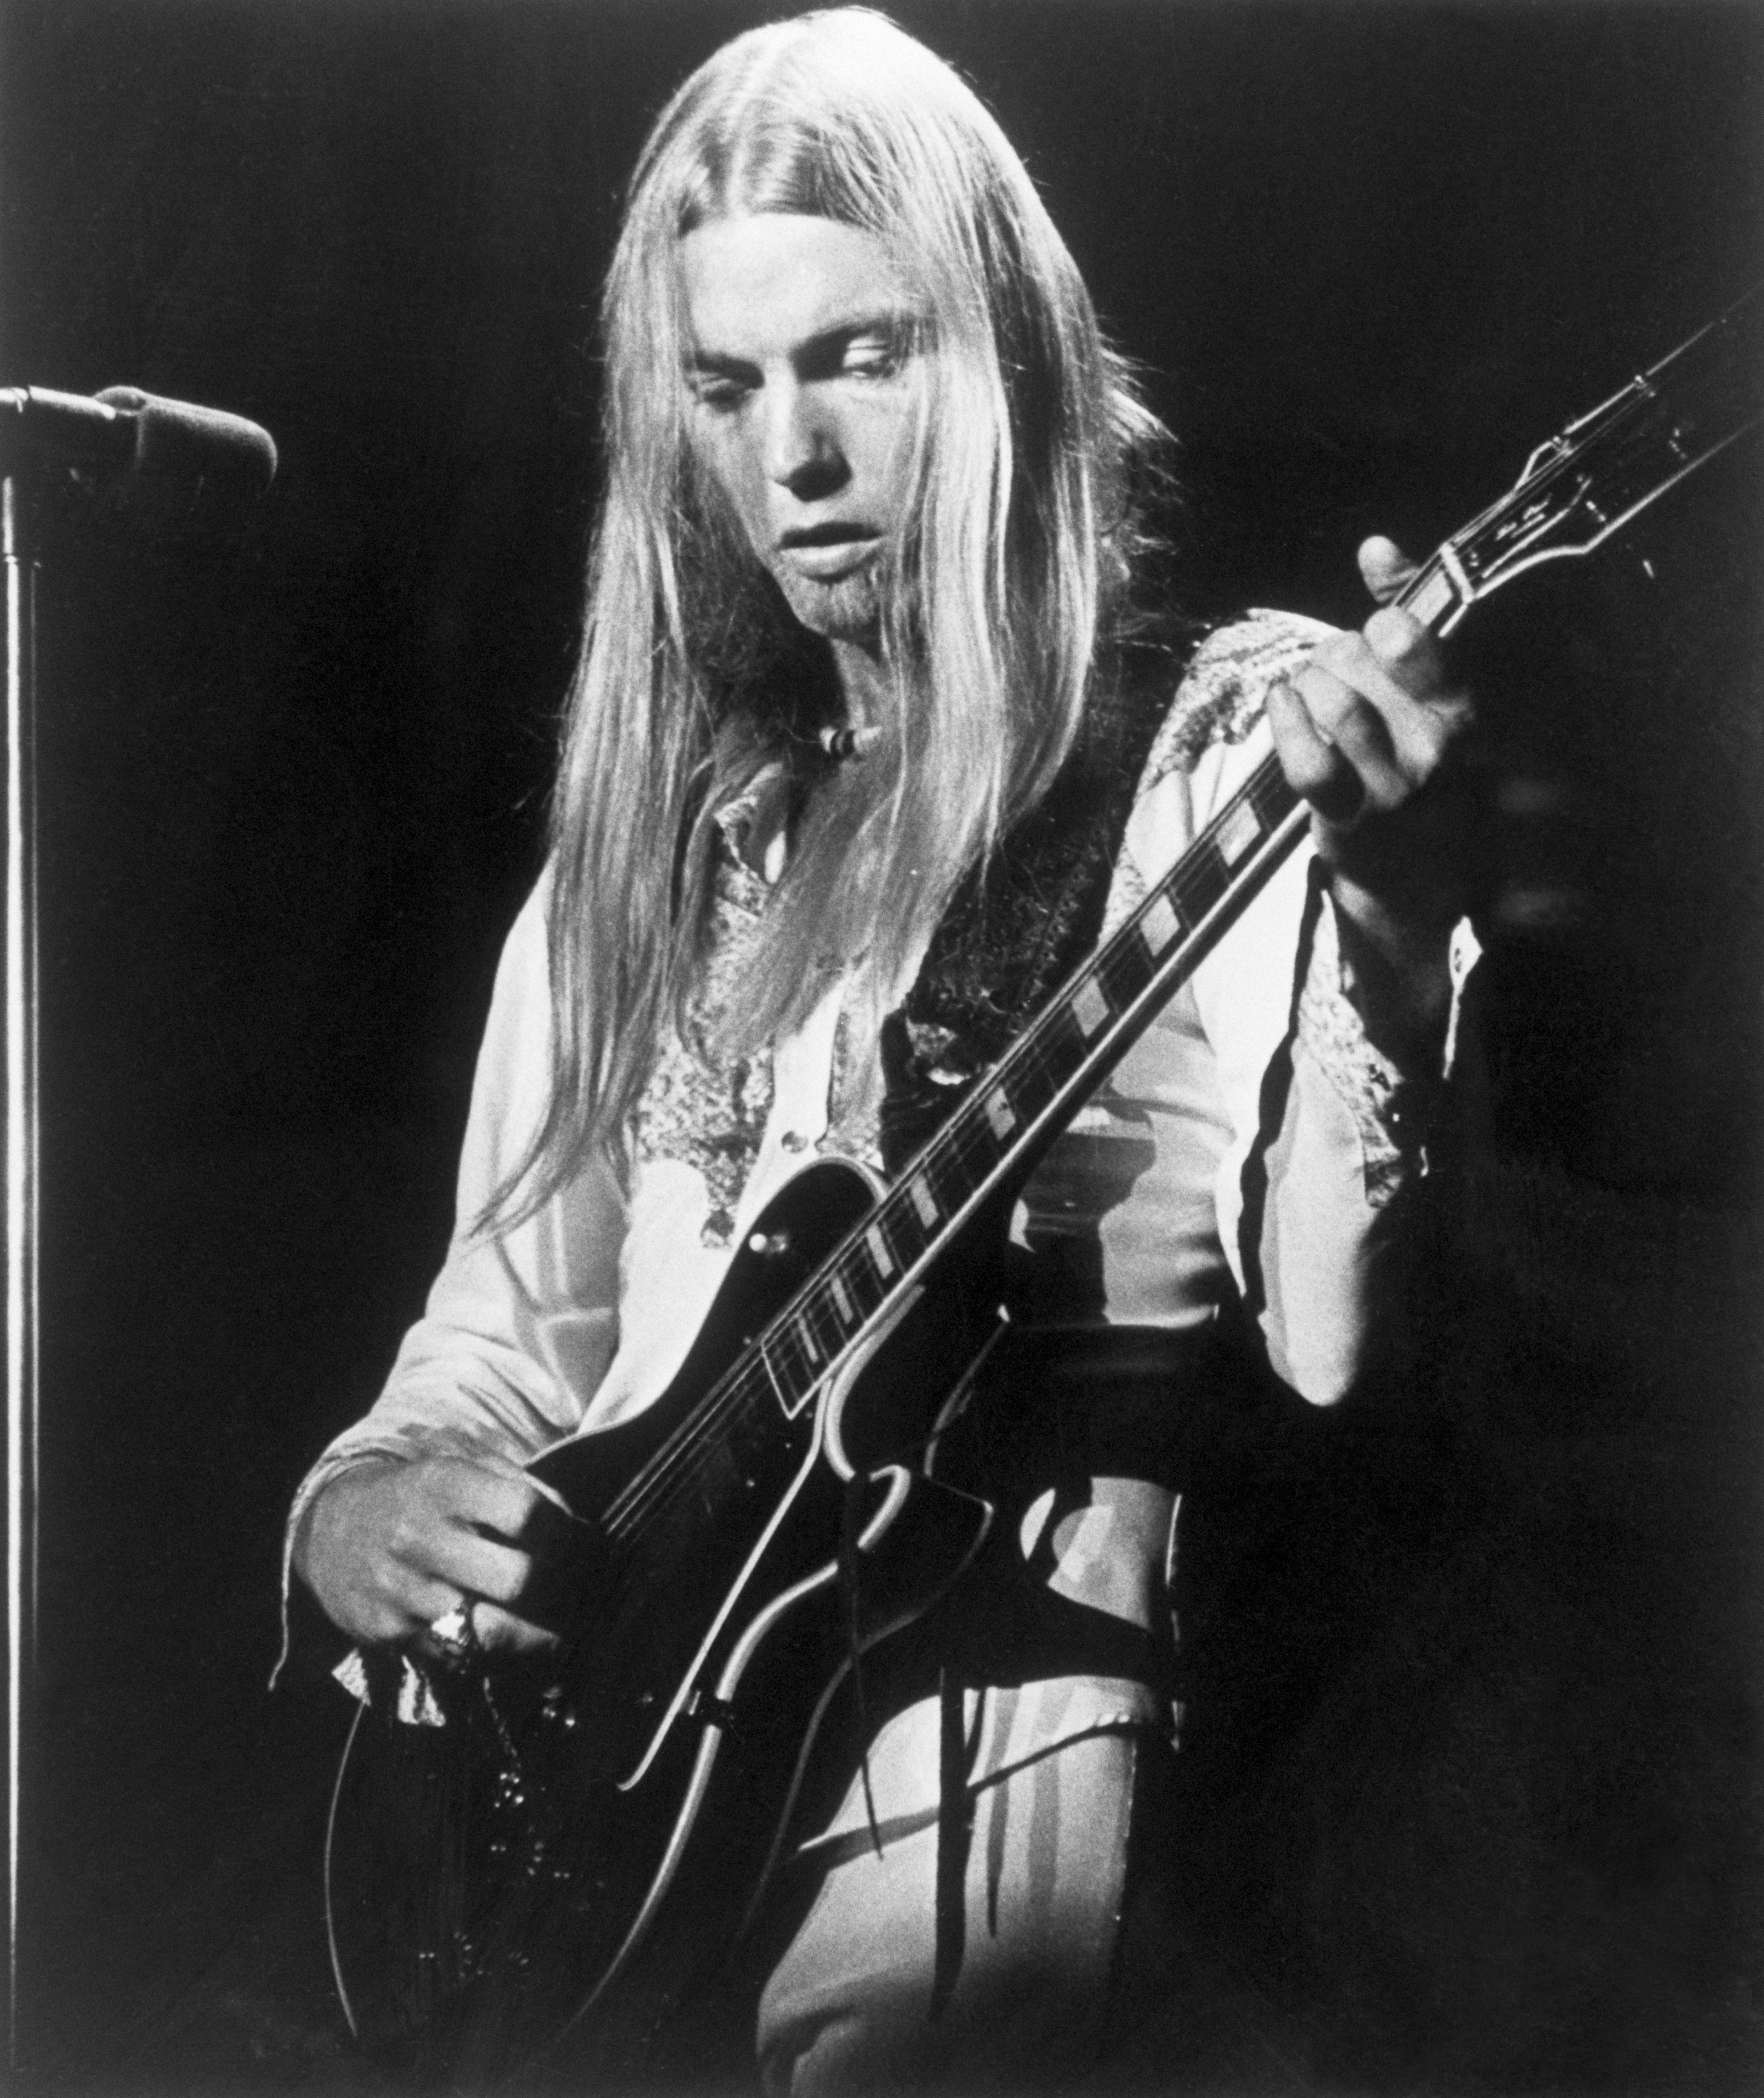 Rock star Gregg Allman, closeup of his performing. August 14, 1975.